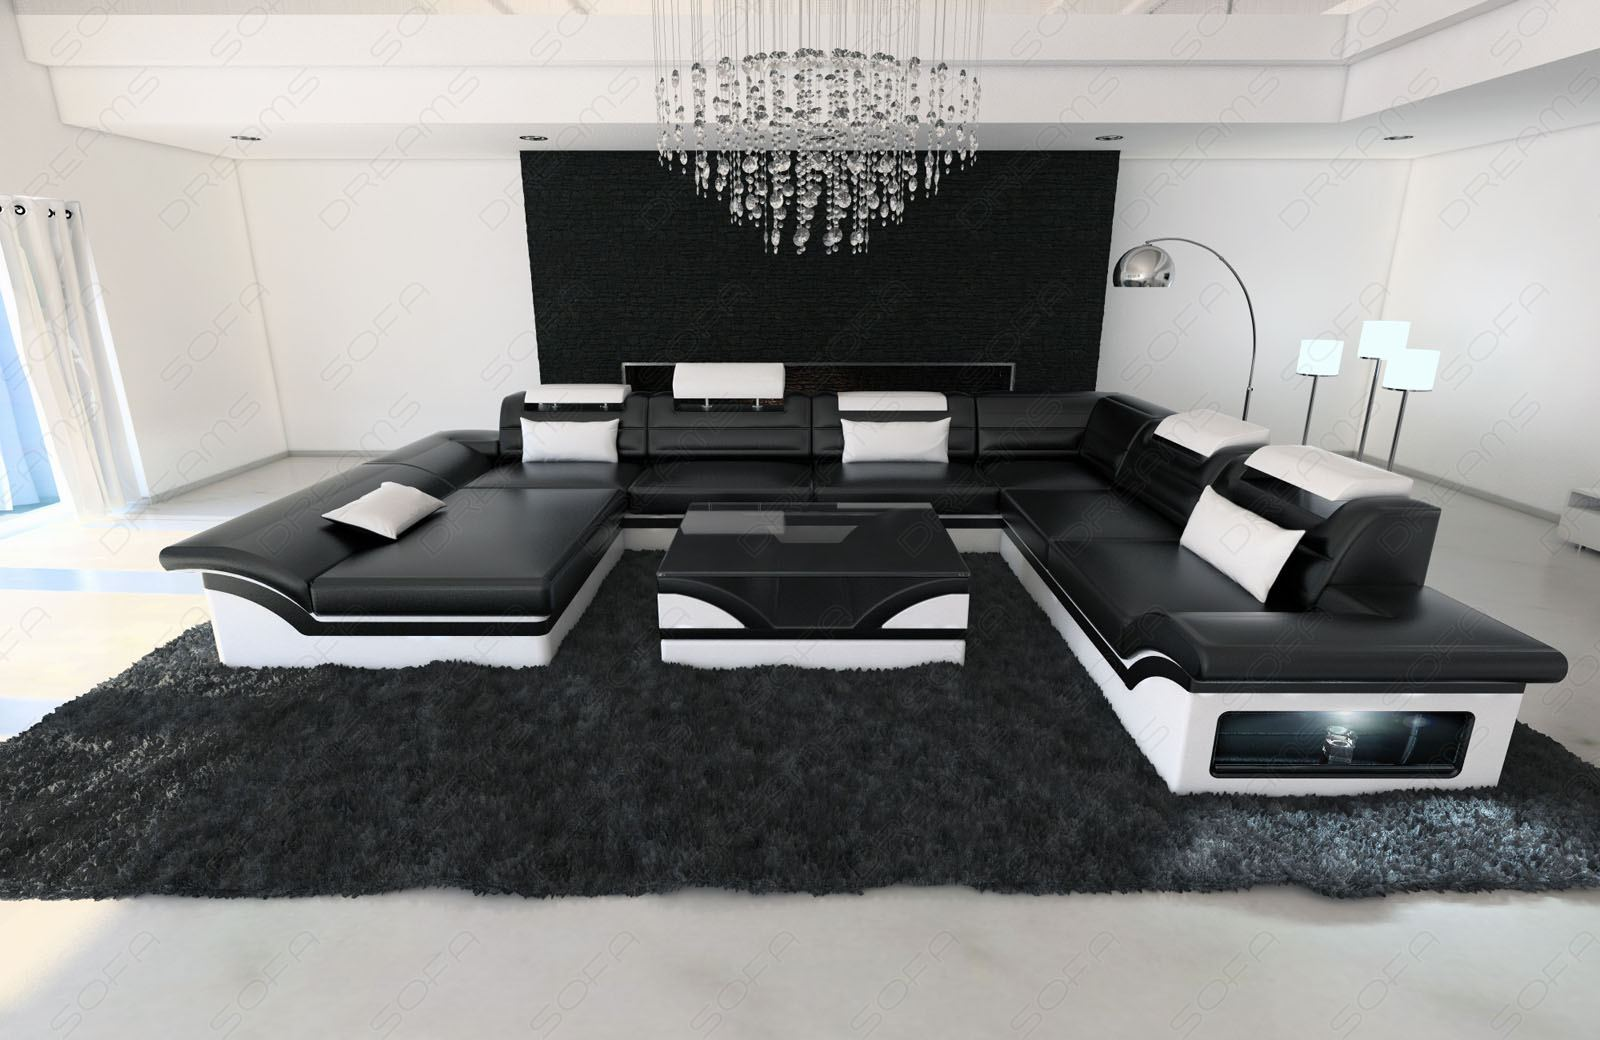 ledersofa enzo xl couch ecksofa ottomane polstersofa schwarz weiss lagerware ebay. Black Bedroom Furniture Sets. Home Design Ideas